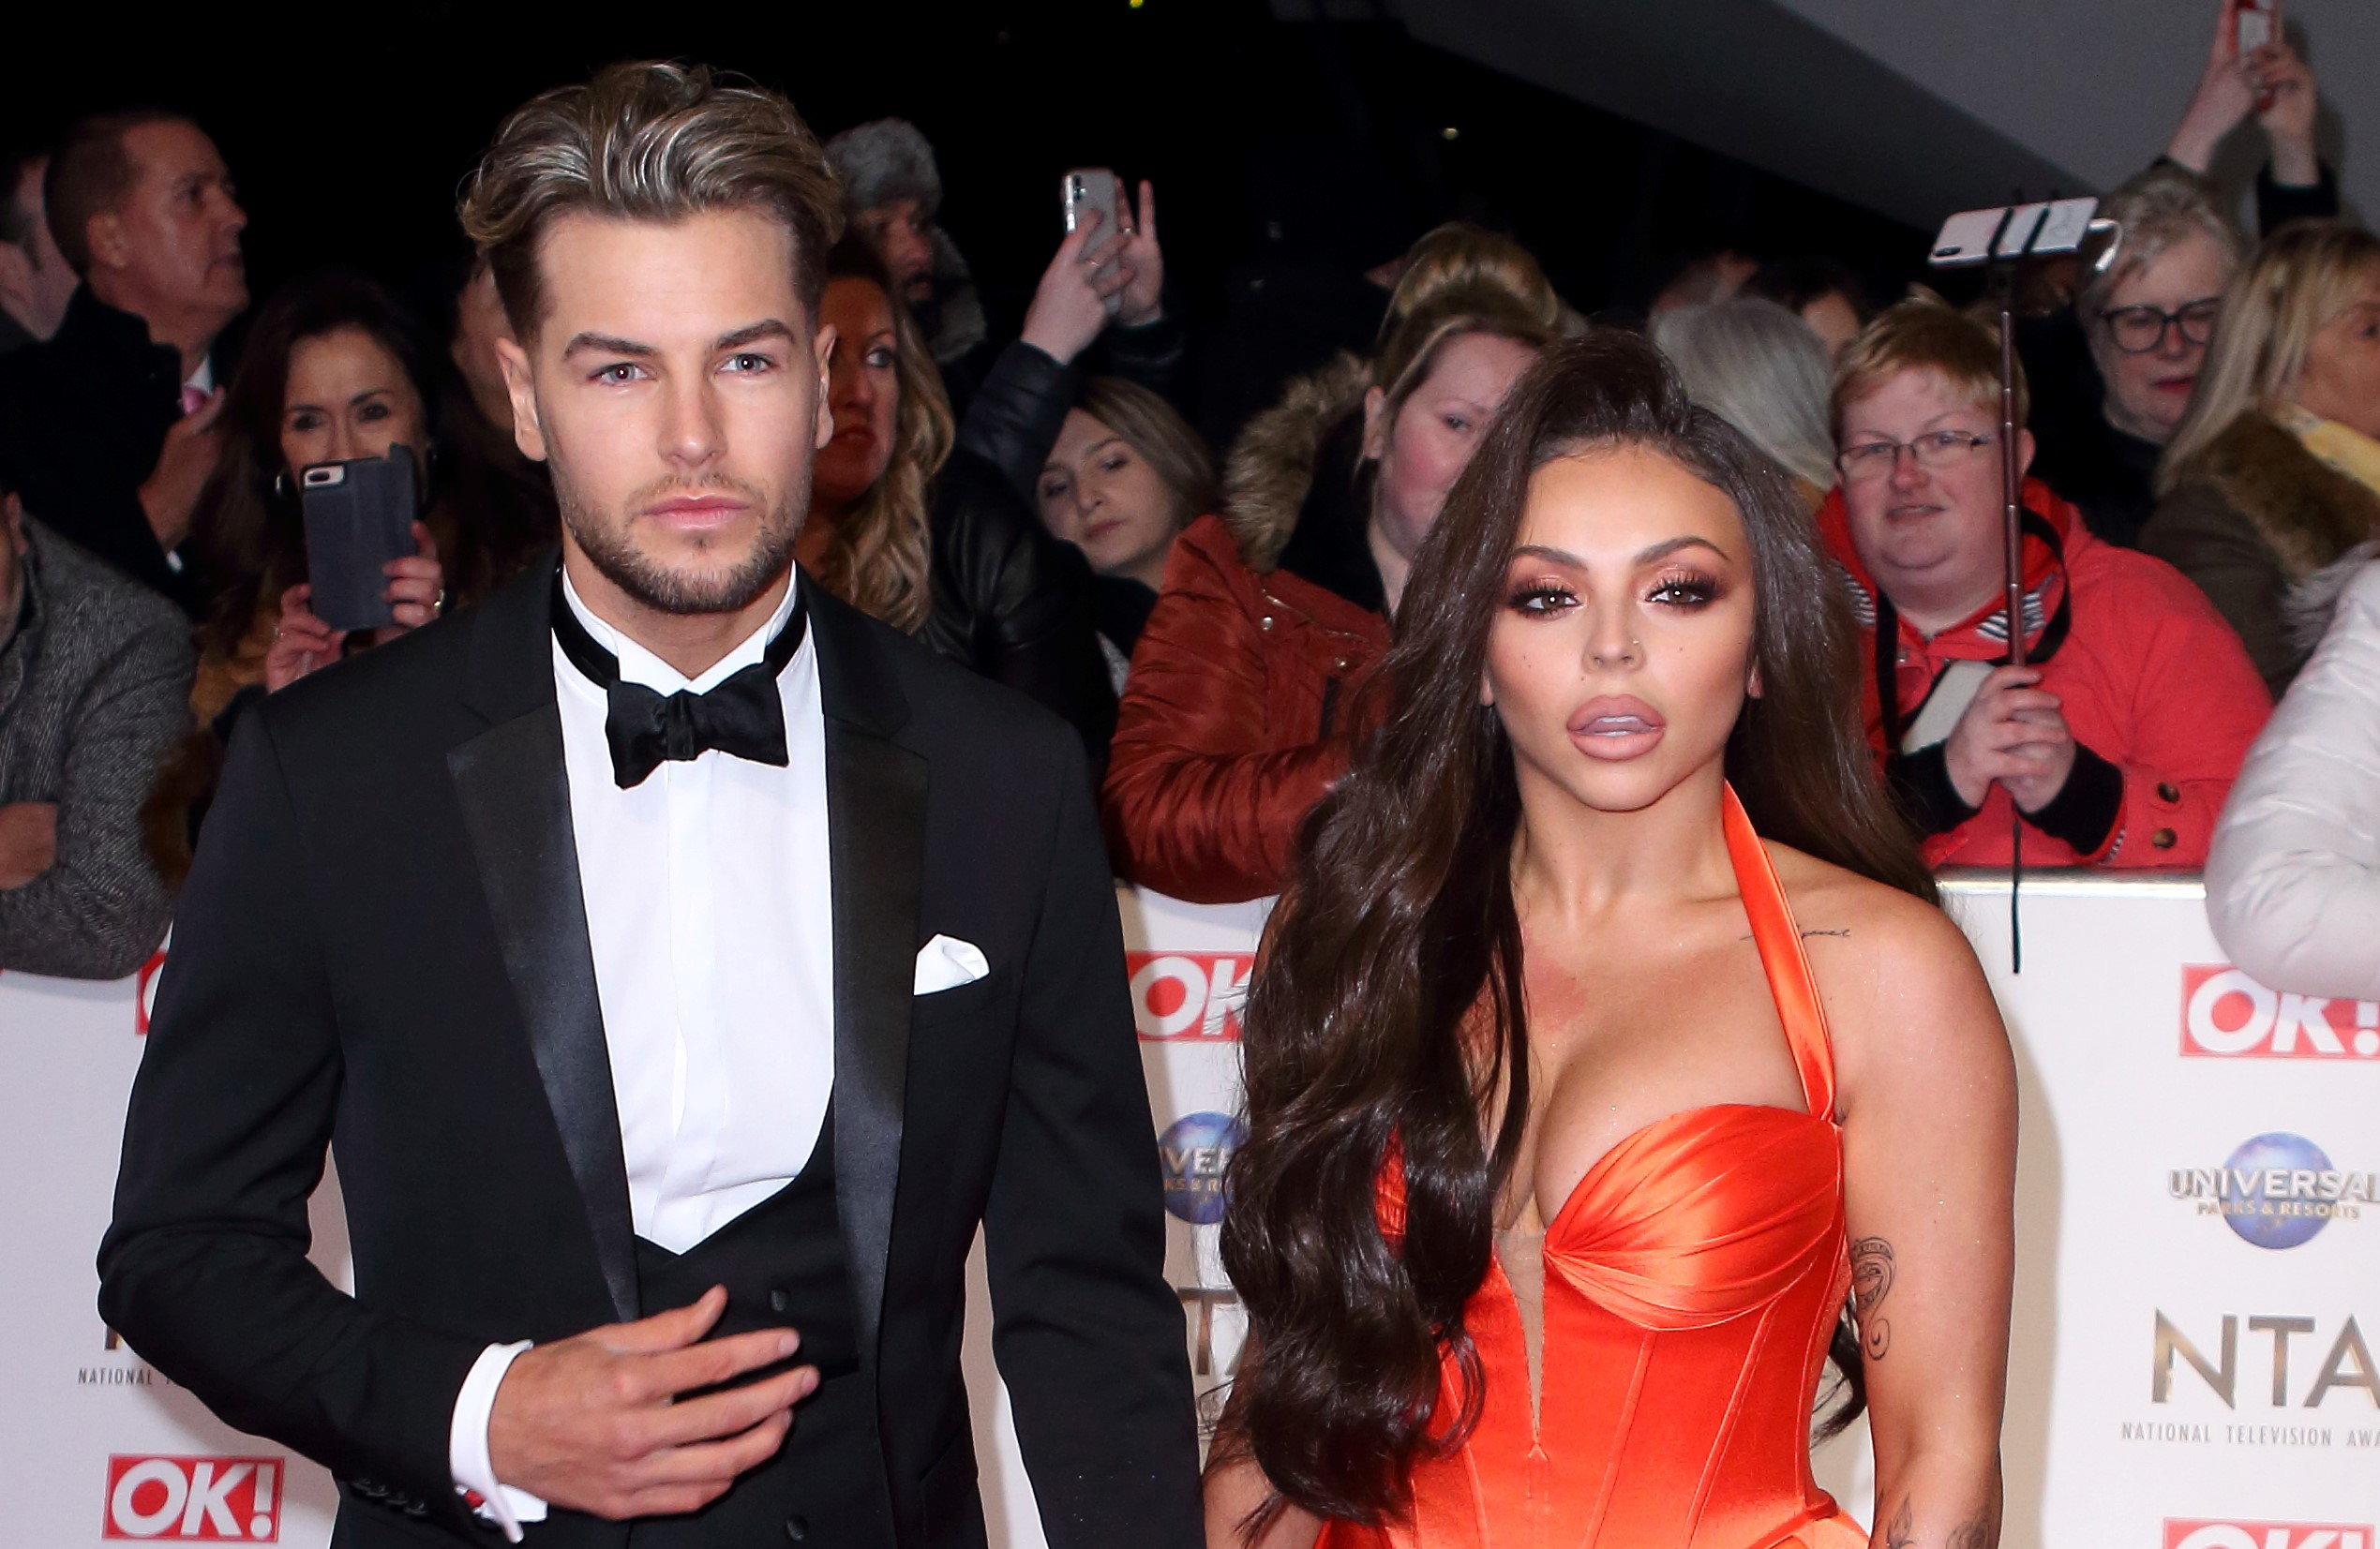 Chris Hughes and Jesy Nelson split 'as coronavirus drives them apart'